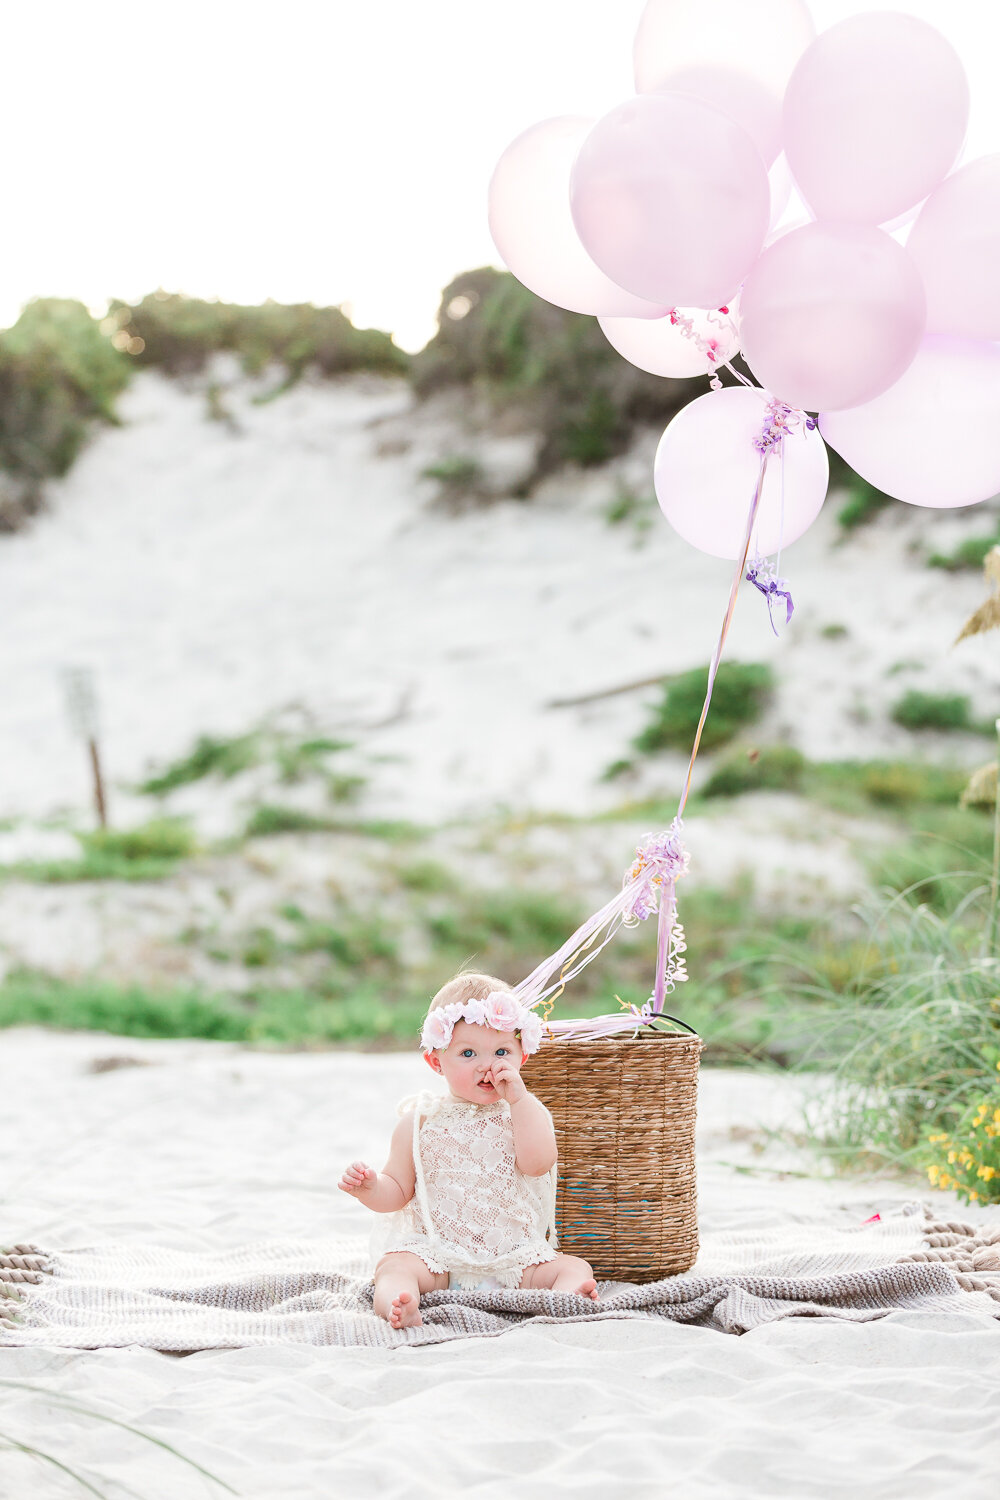 First birthday session at the beach in Hanna park with a basket and balloons